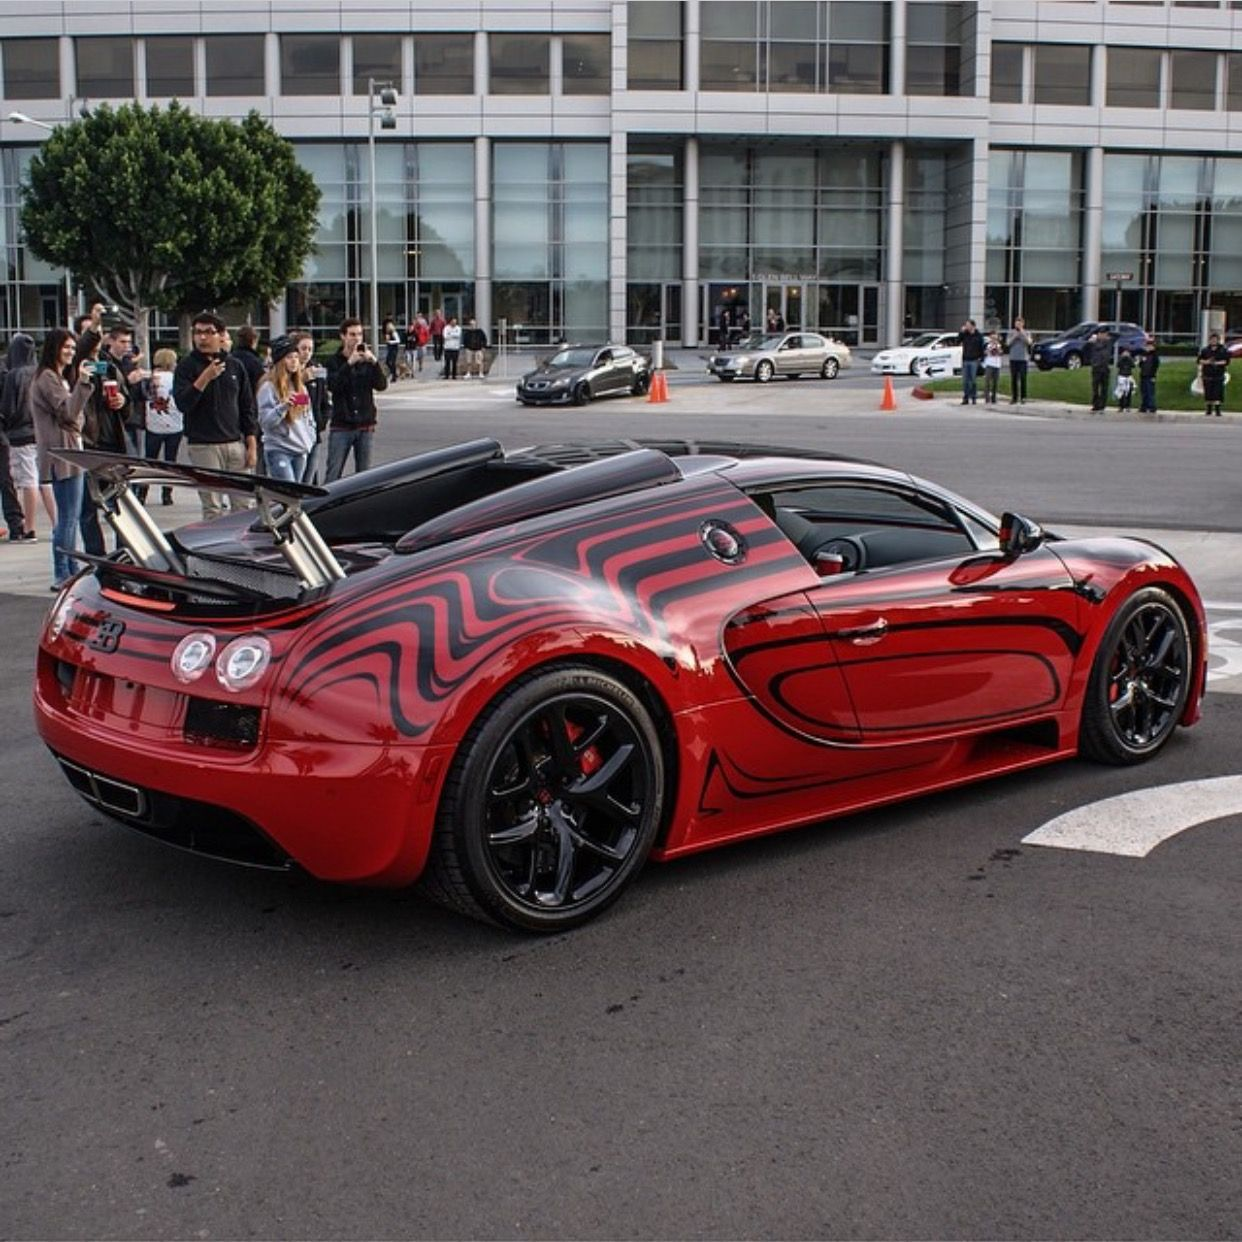 Bugatti Veyron Grand Sport Vitesse Painted In The L Or Rouge Color